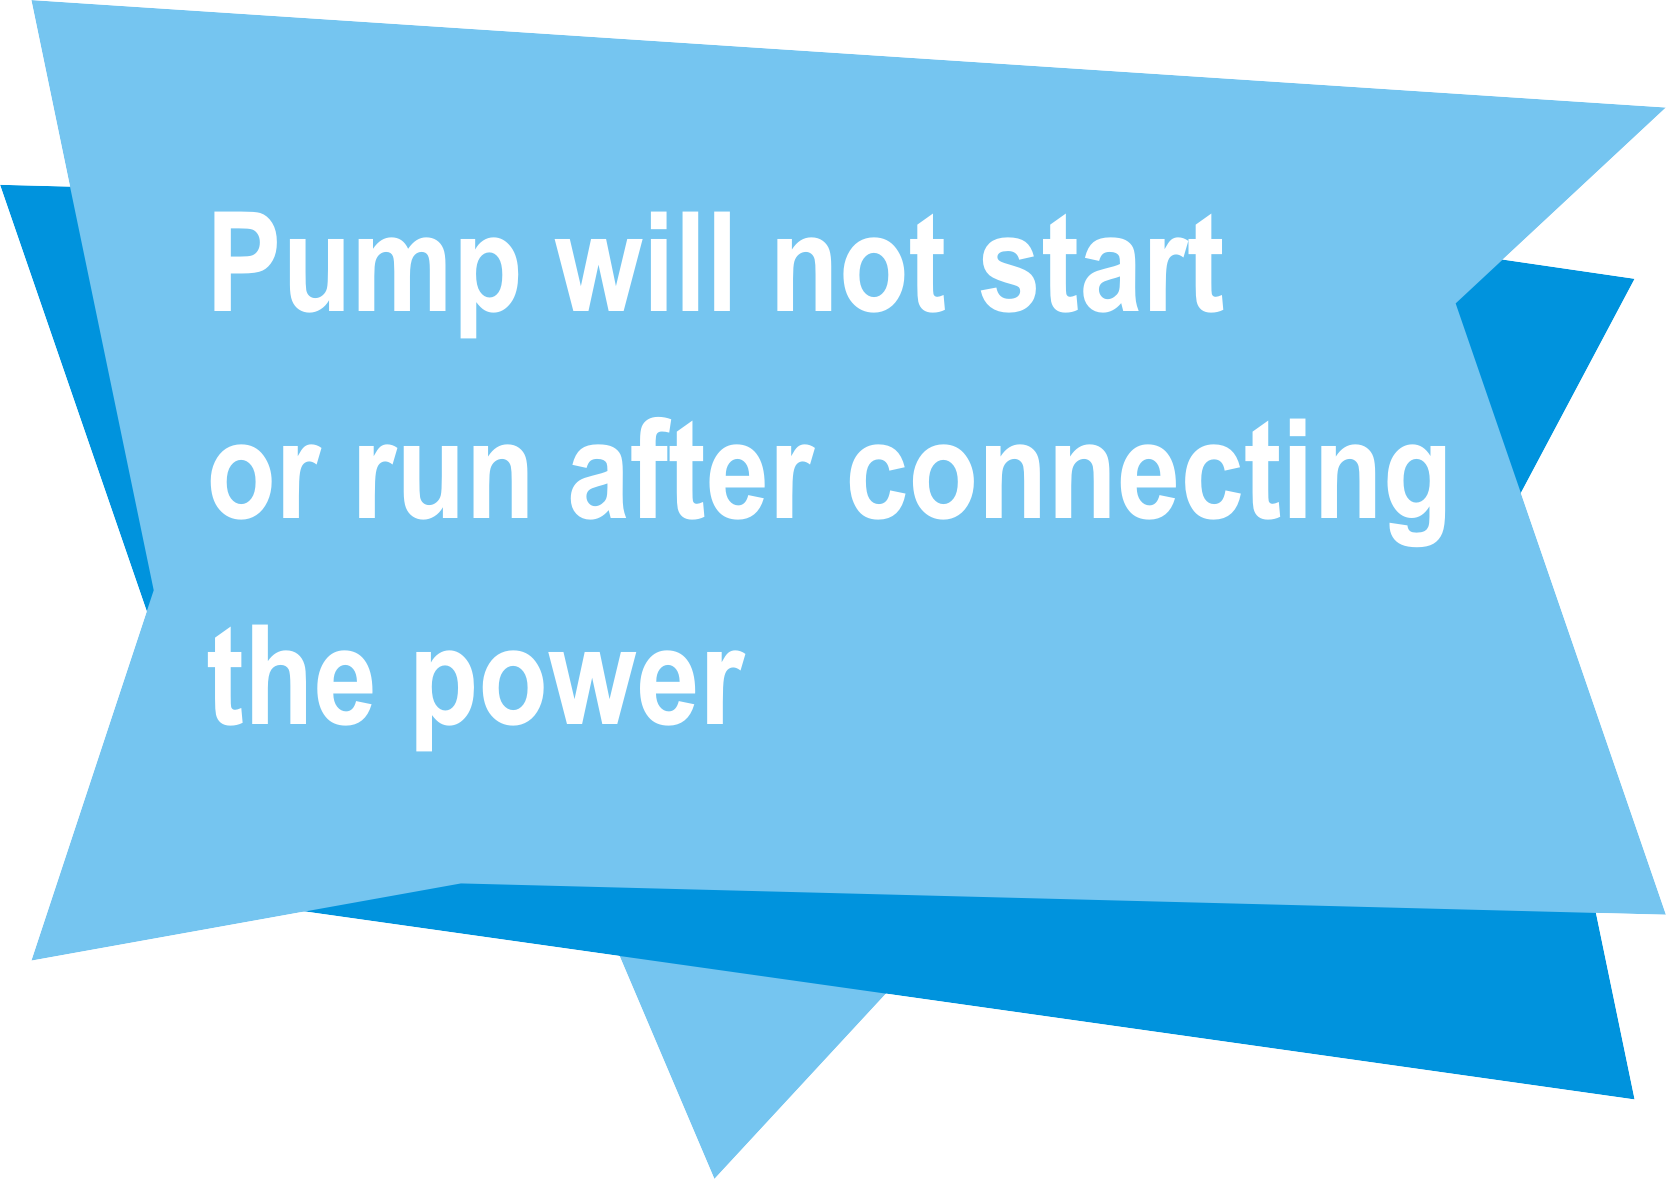 Pump will not start or run after connecting the power